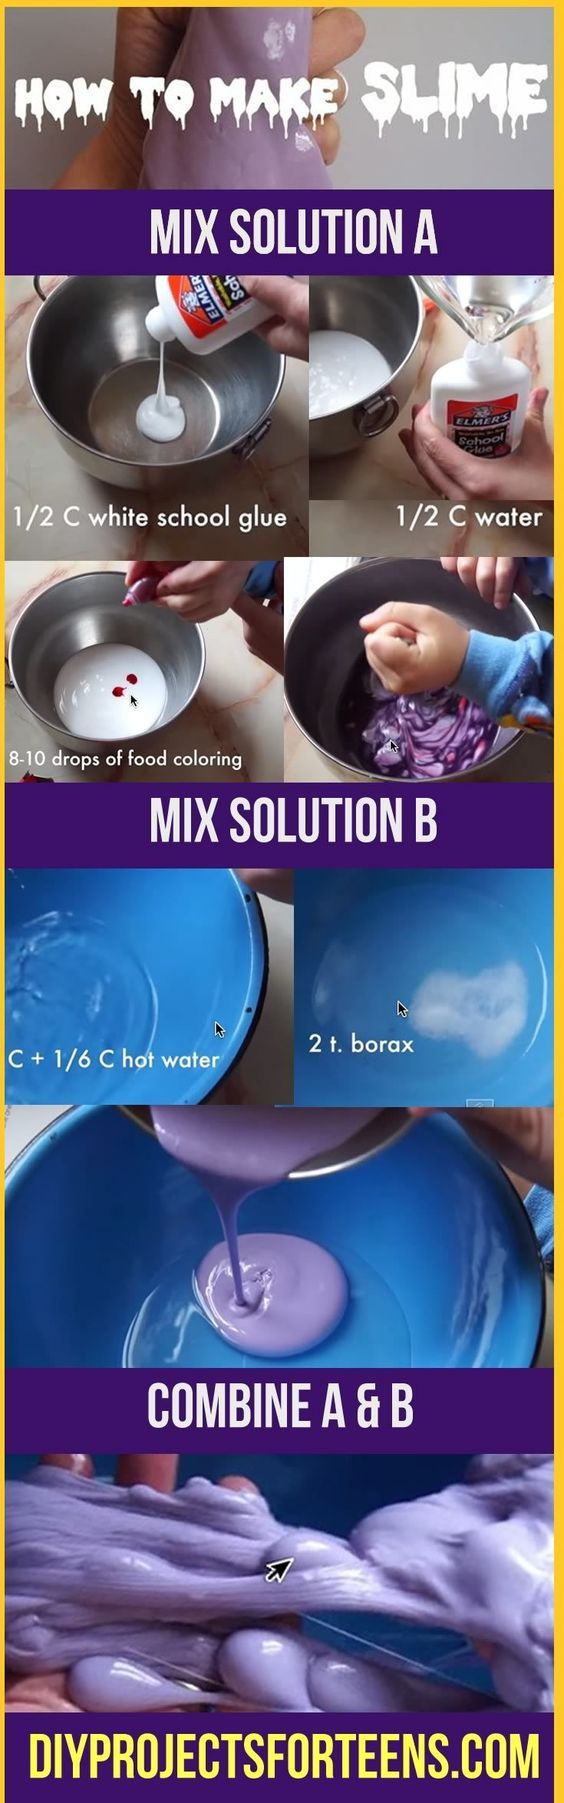 Fun Diy Projects  How To Make Slime Tutorial  Cool Crafts Ideas For Teens  And